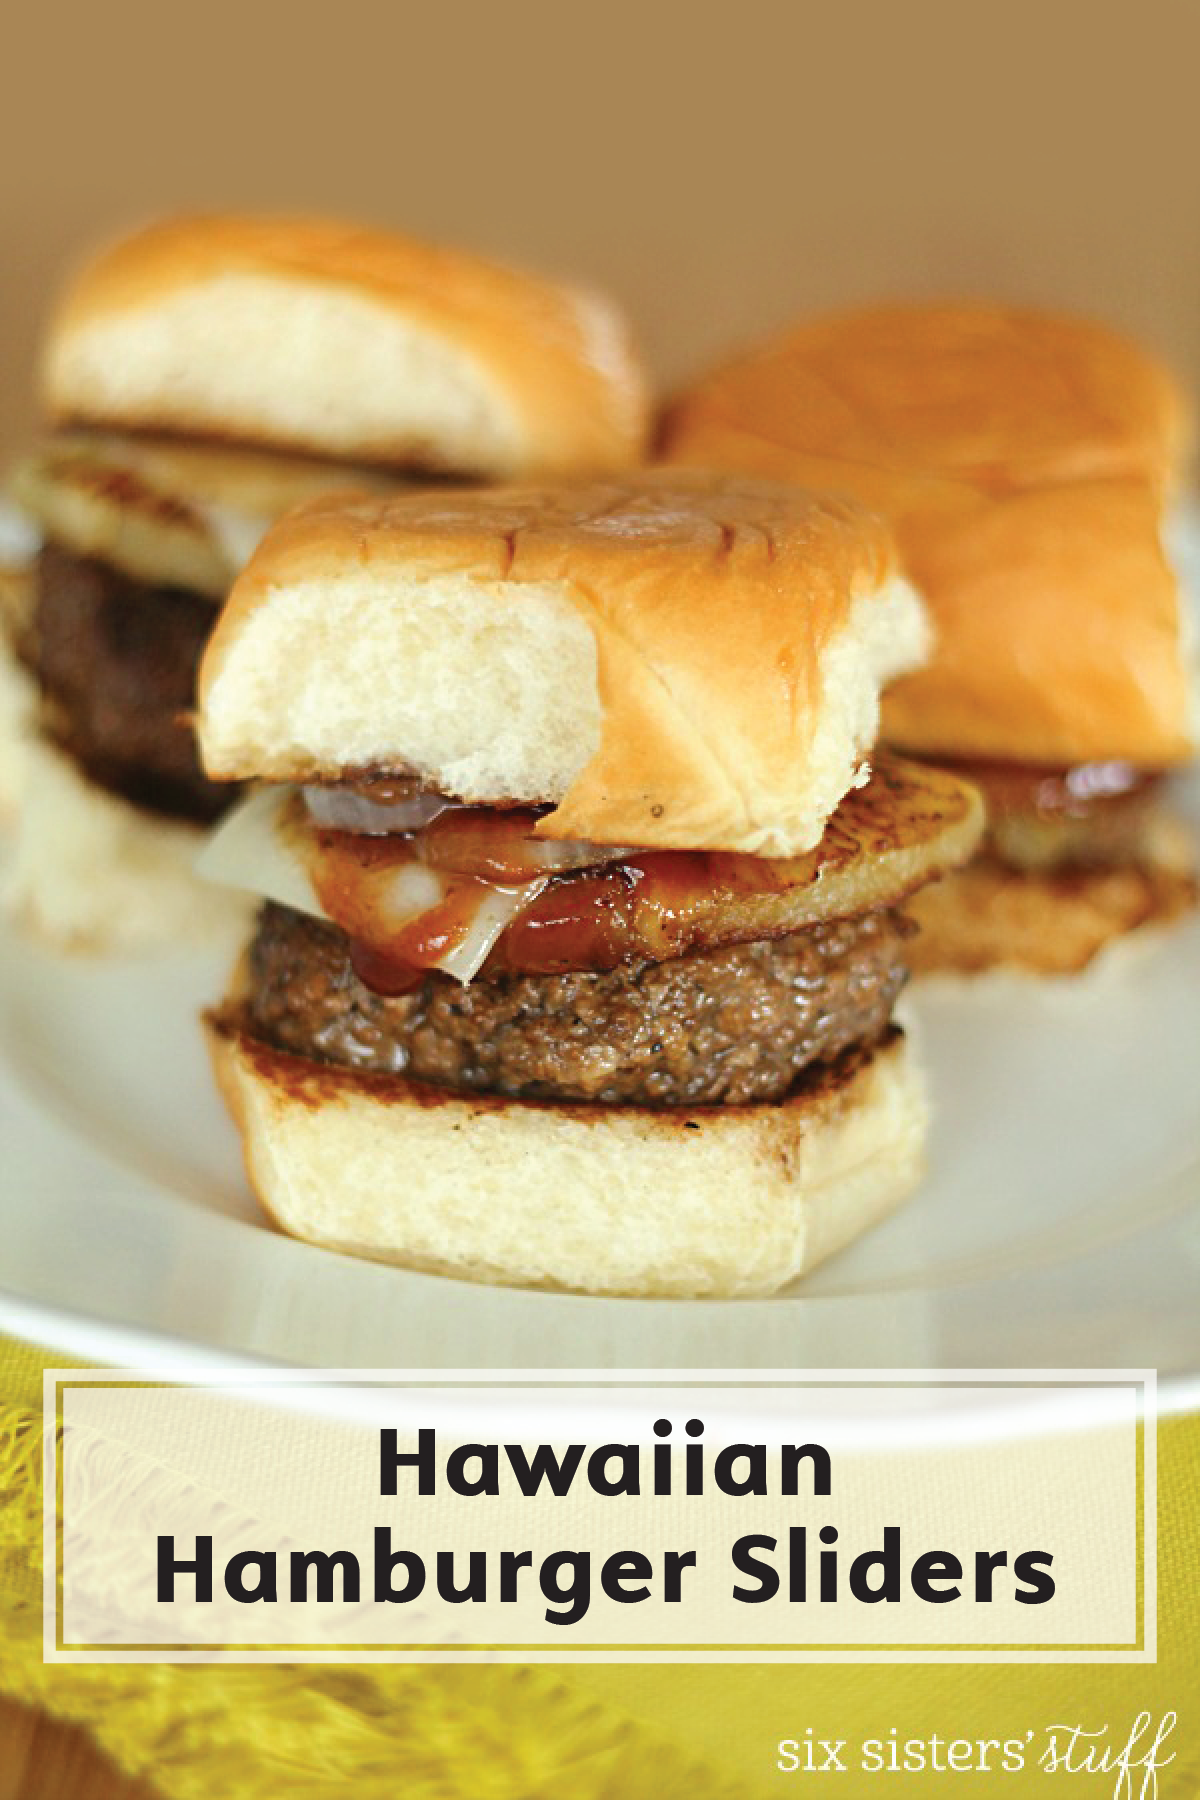 Bring tropical flavor to your Game Day spread with this recipe for Hawaiian Hamburger Sliders. With toppings like Swiss cheese, BBQ sauce, and pineapple, your tailgating guests will be licking their fingers after enjoying this savory appetizer.